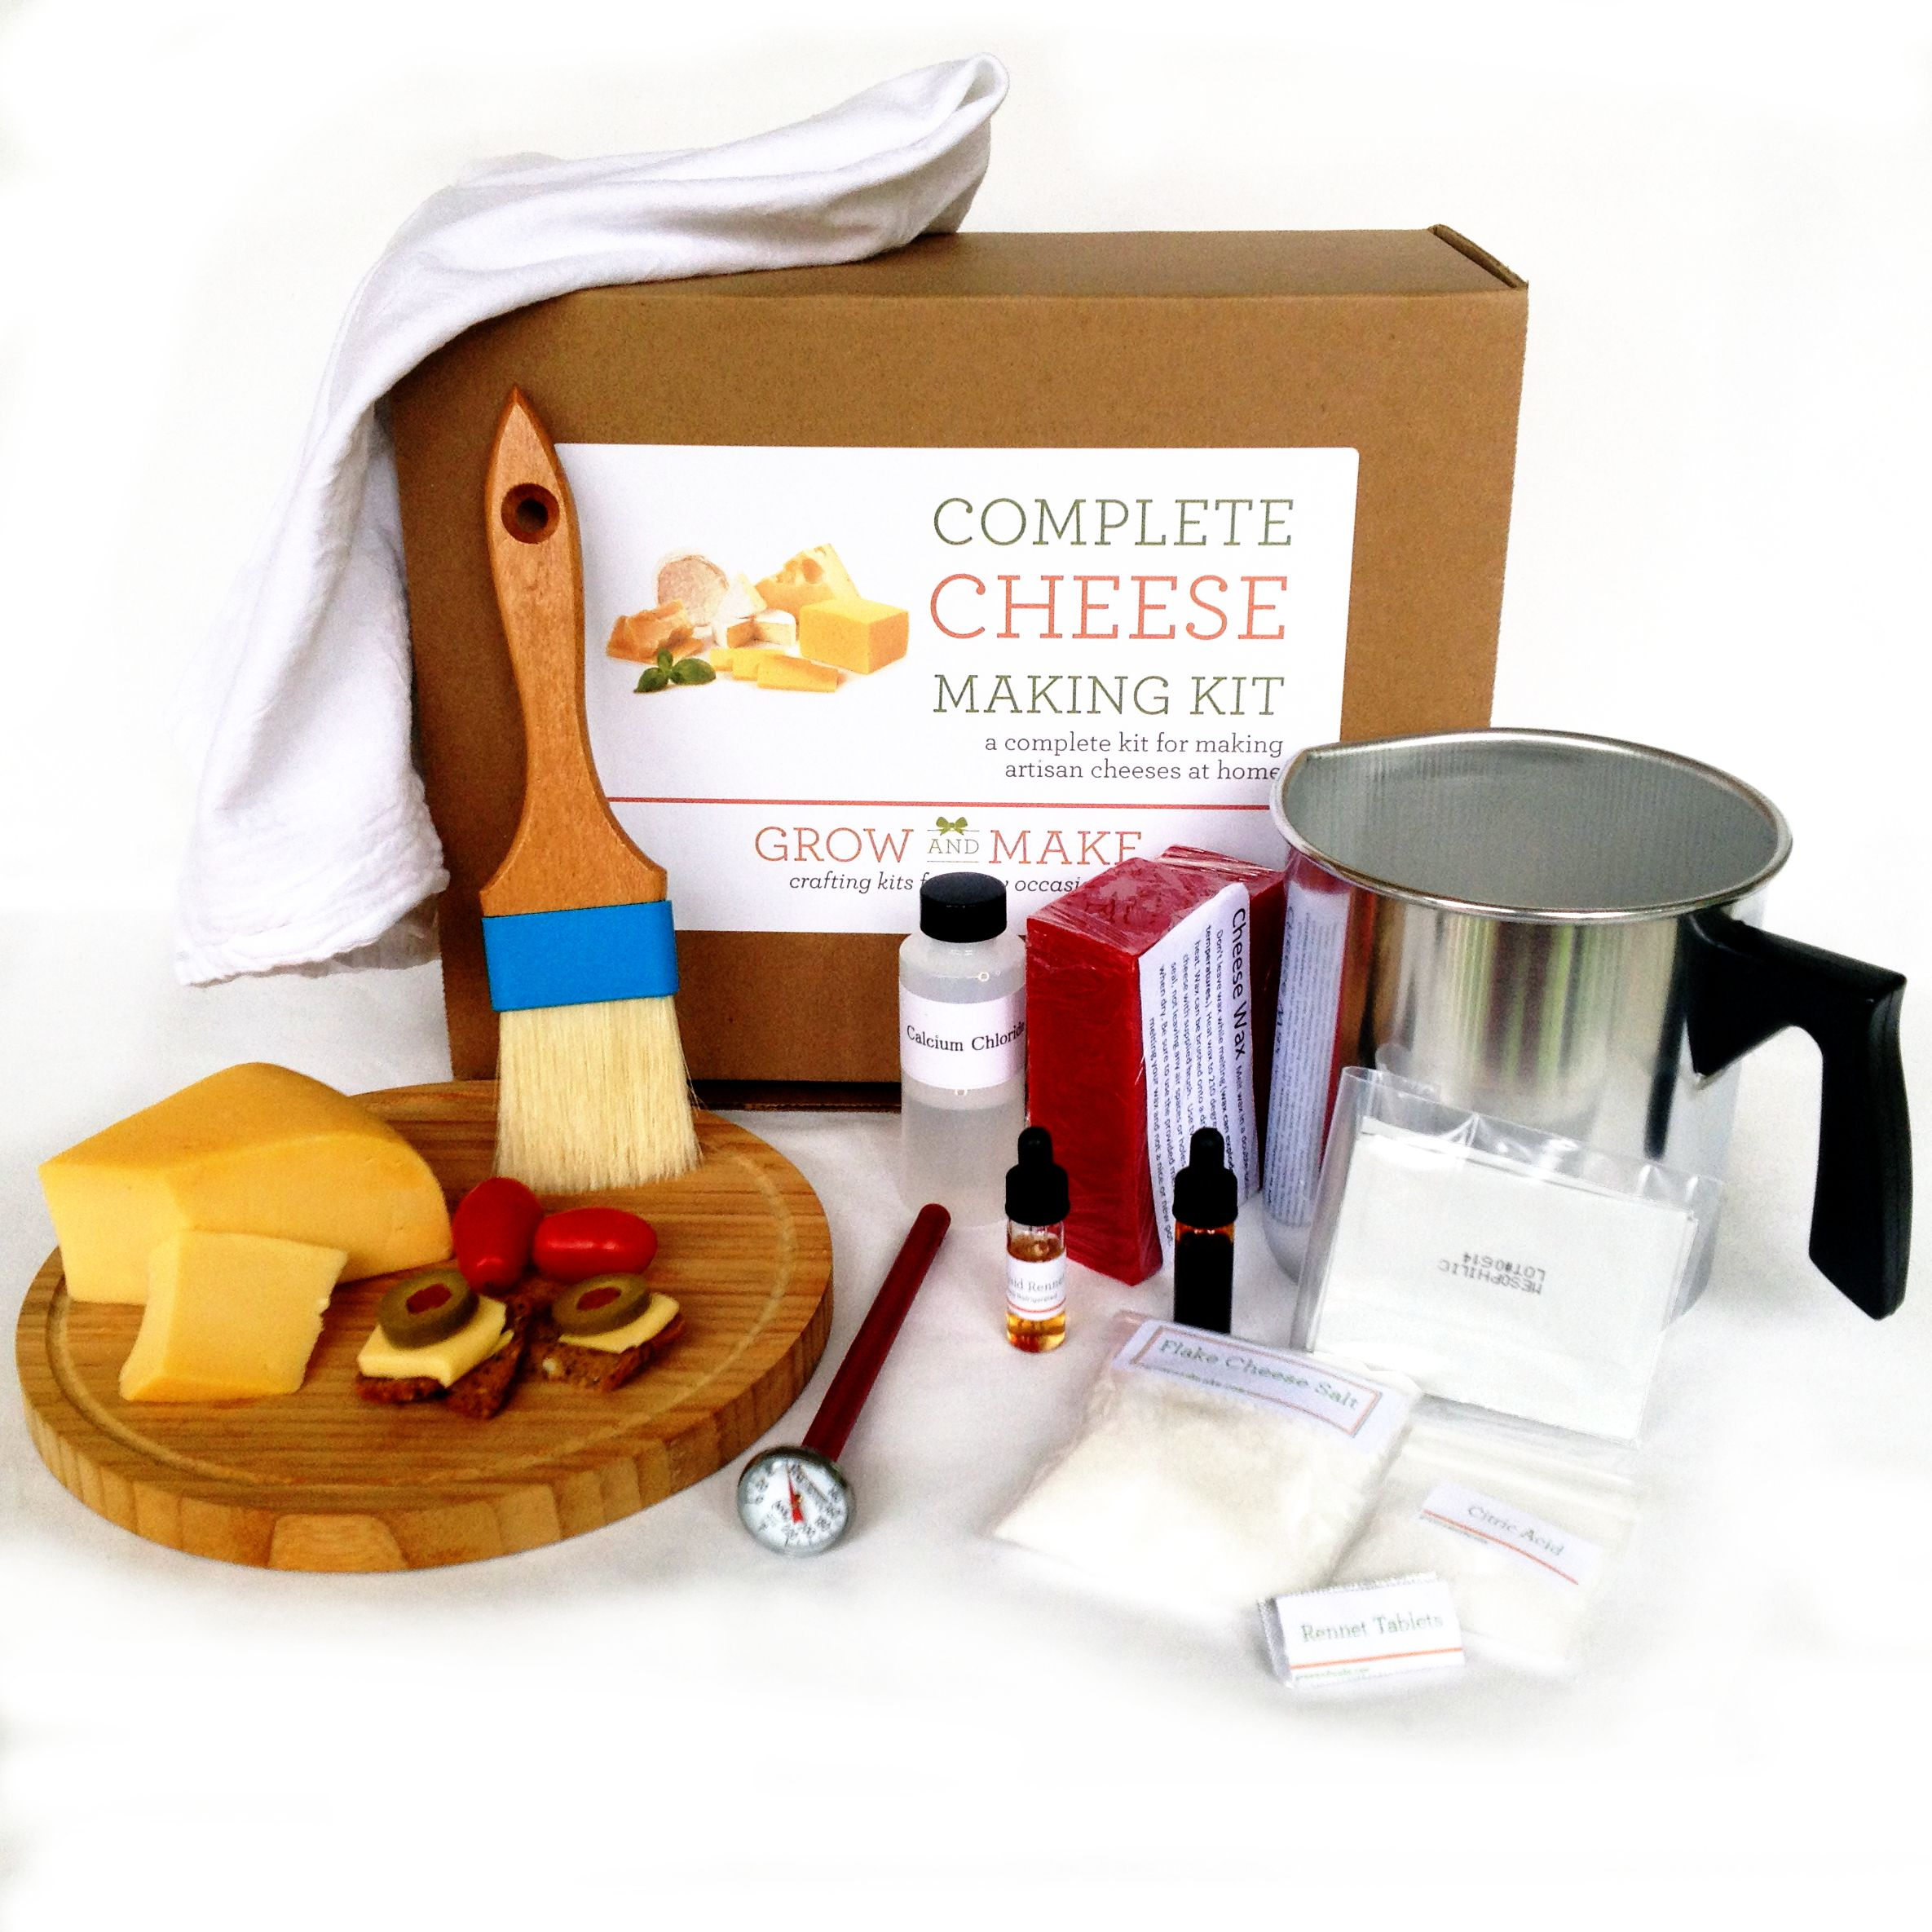 Diy kits for fathers day father box and starter kit diy kits for fathers day solutioingenieria Gallery